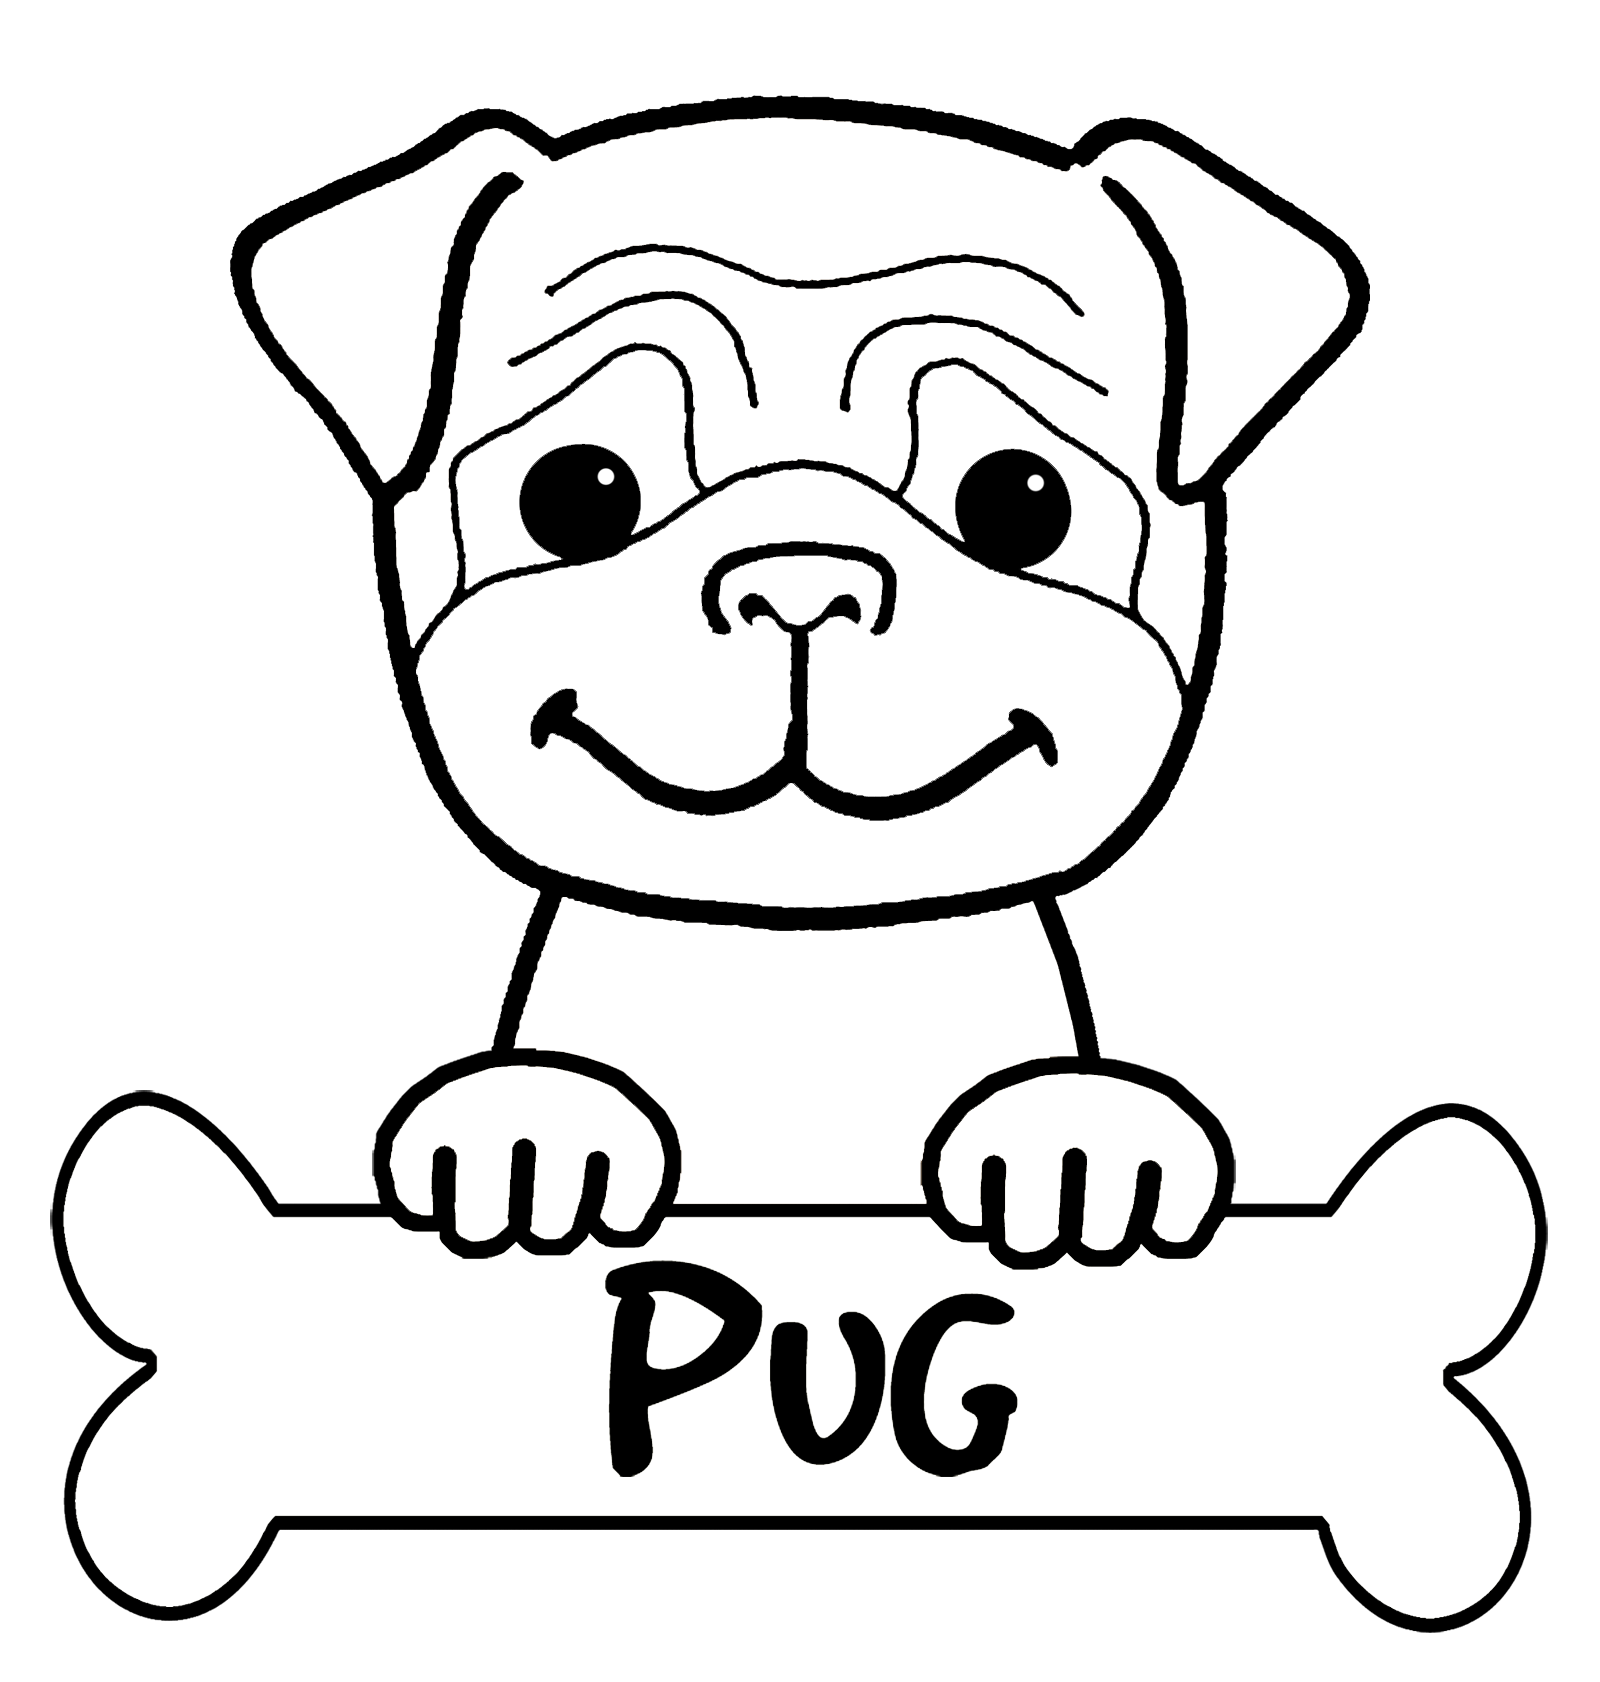 pug coloring pages art of pug coloring book volume no 1 physical book coloring pages pug